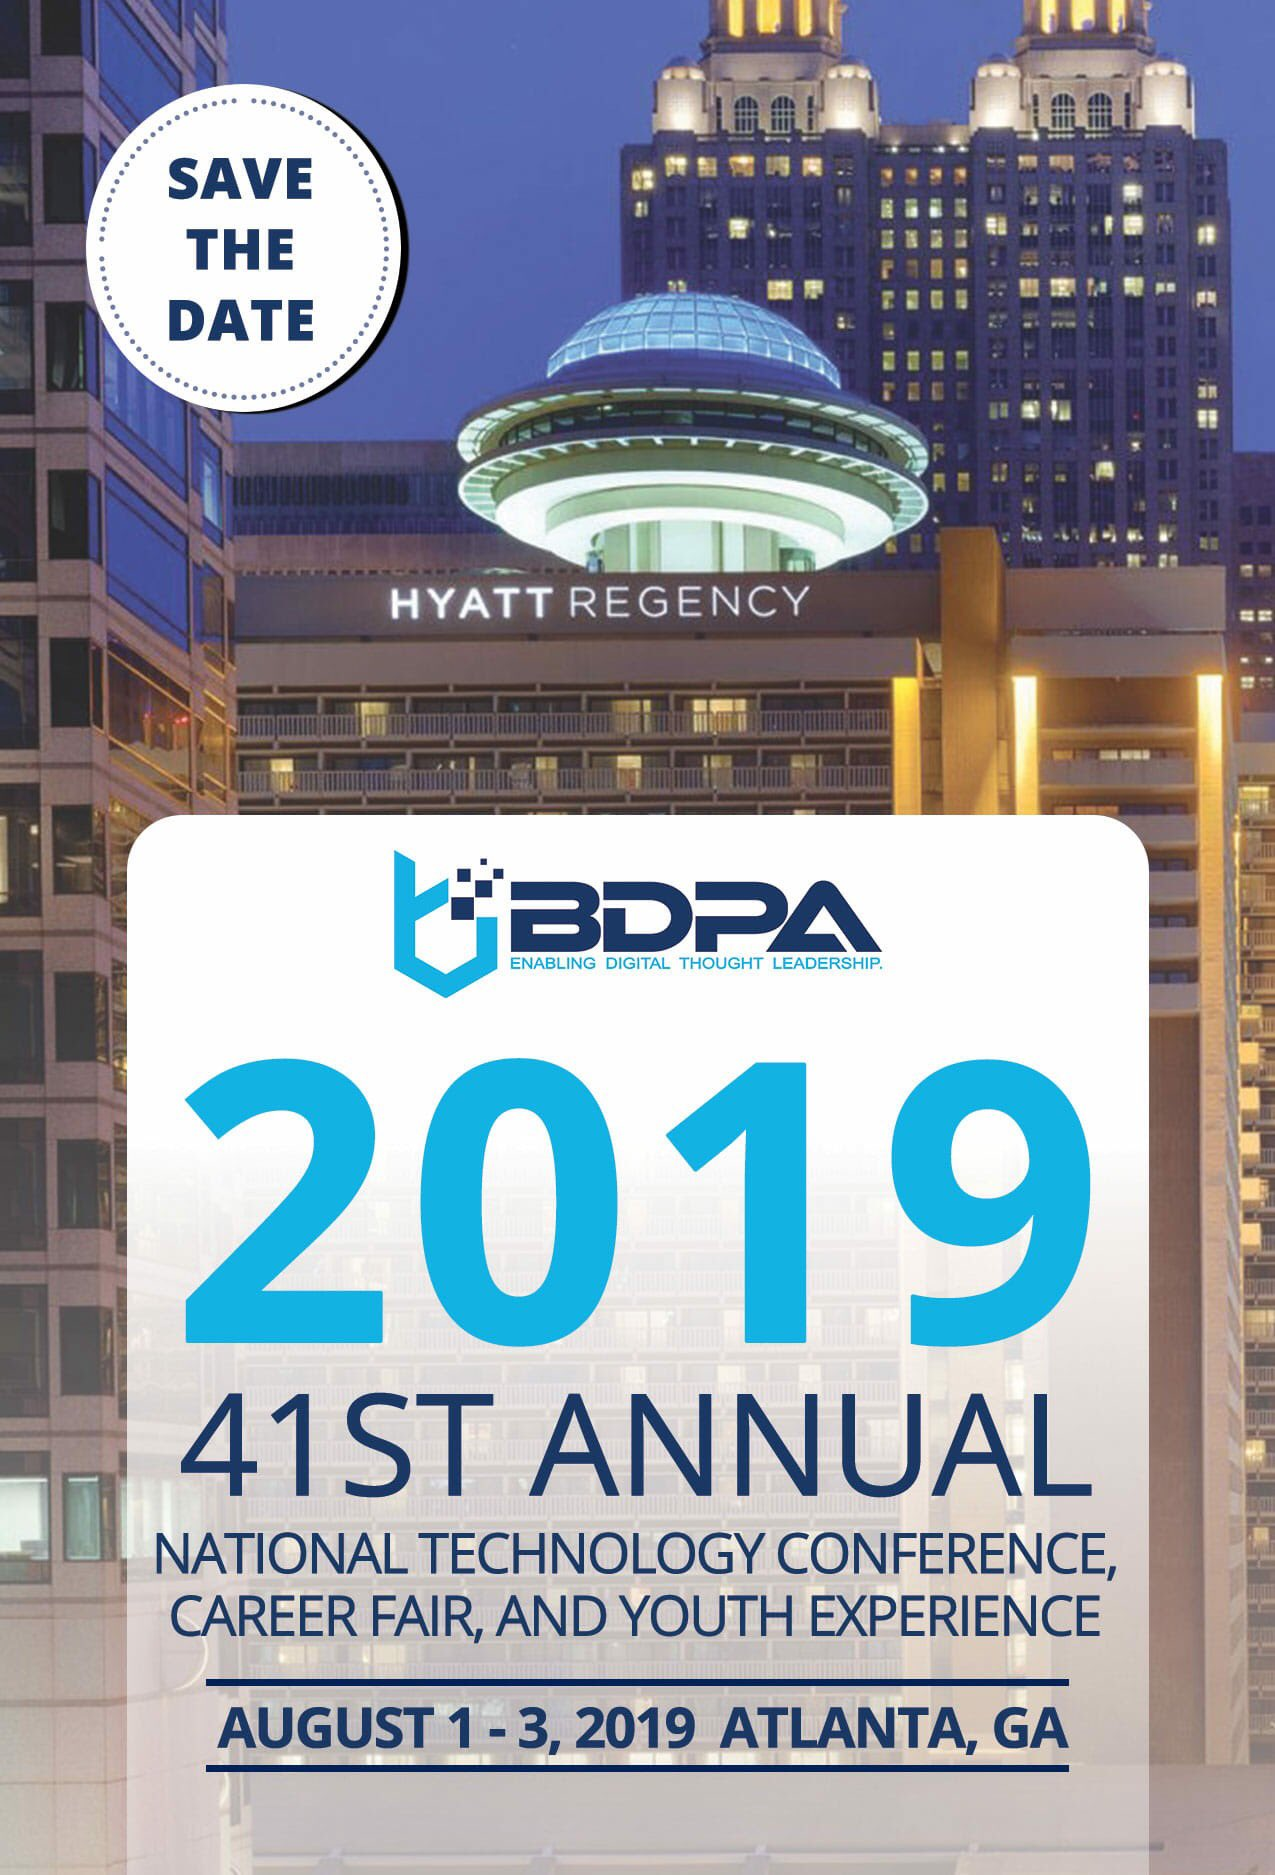 #BDPACON19 | August 1-3, 2019 | Atlanta